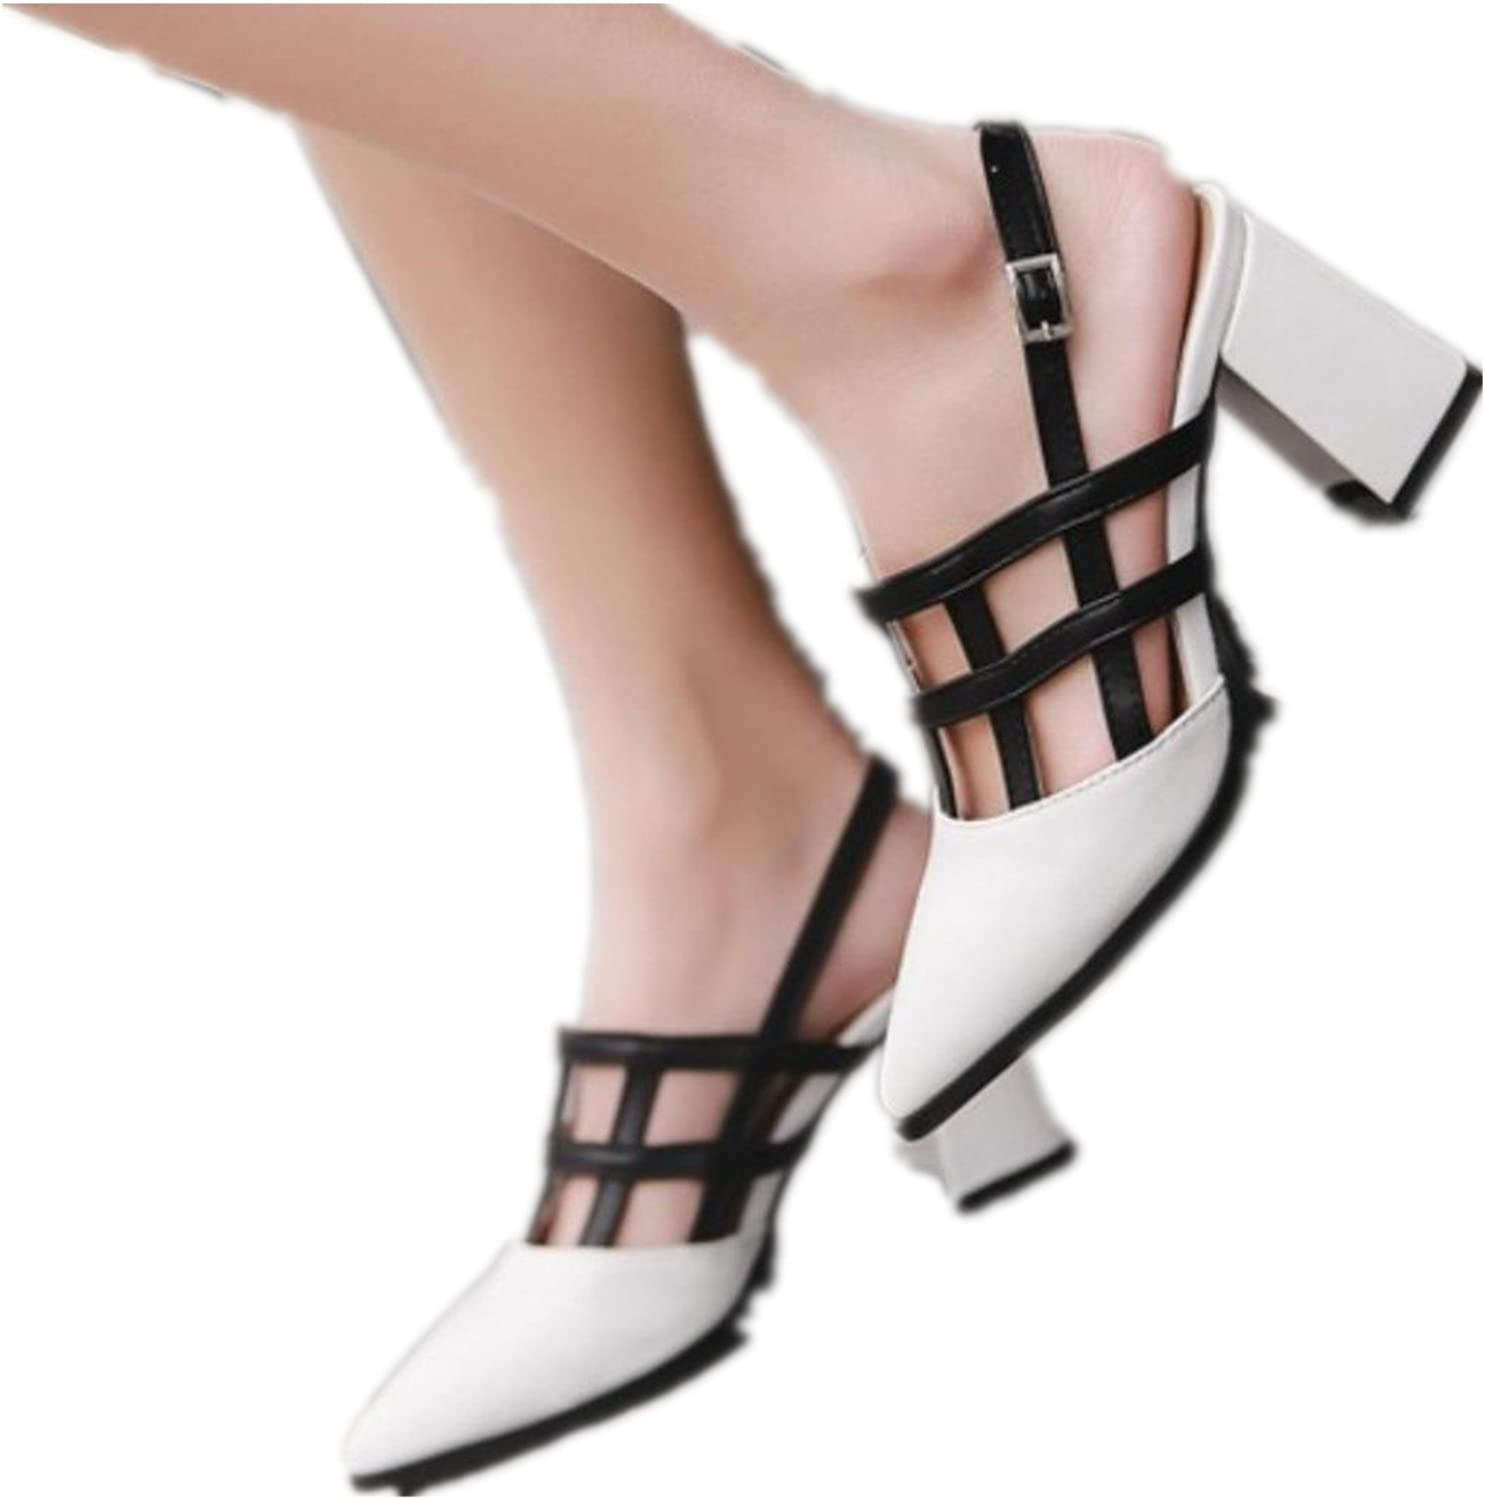 Gladiator Sandals Summer shoes Women Mixed color Thick Heel Pumps